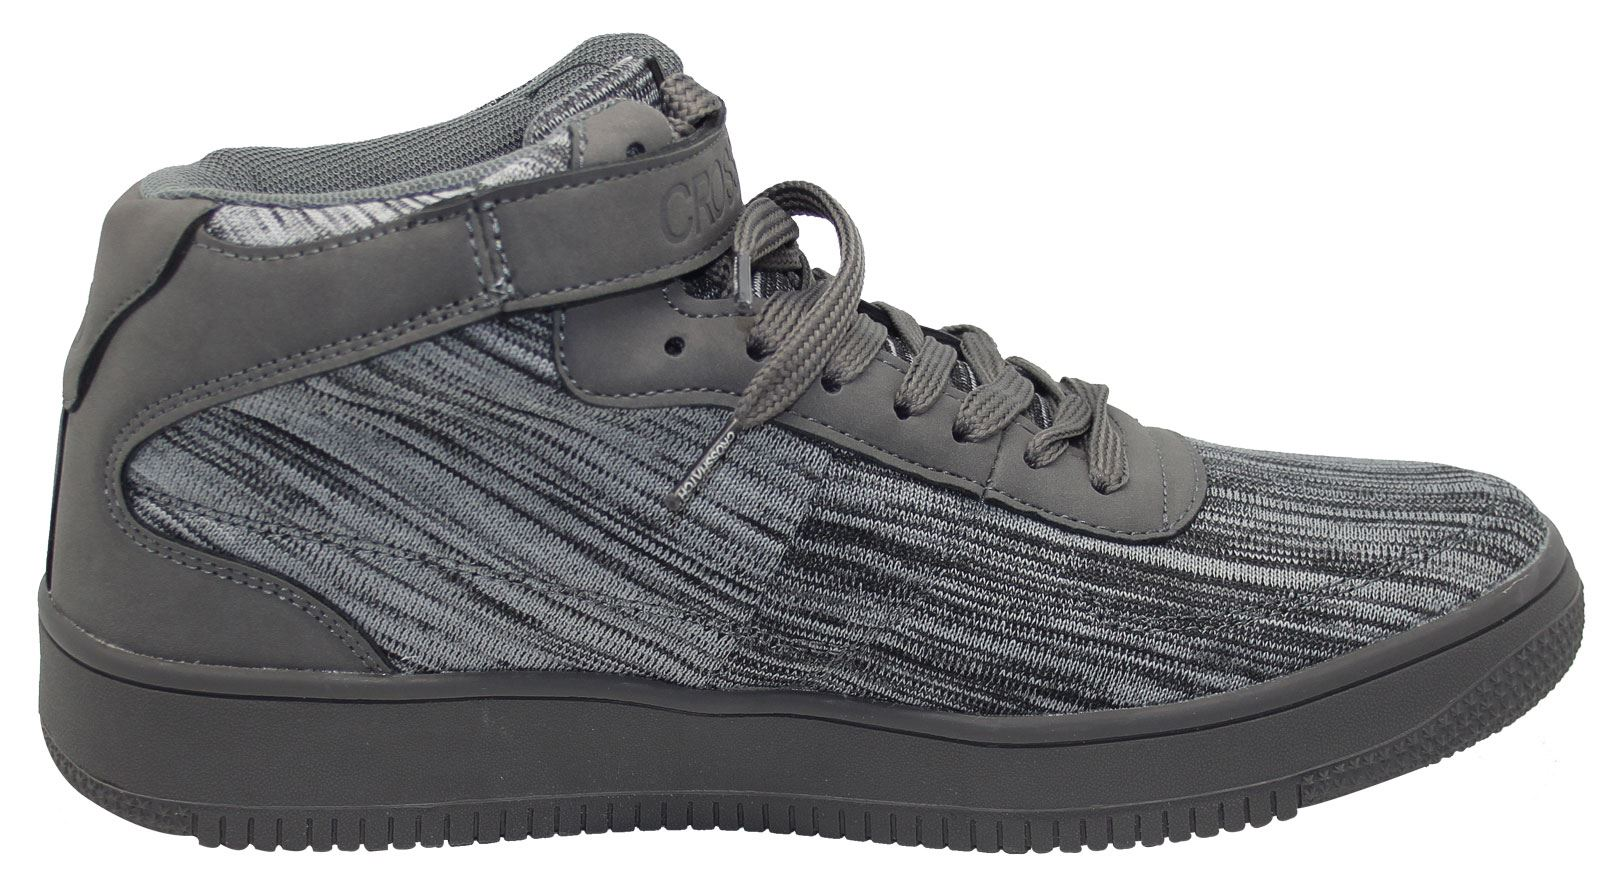 Mens-New-Crosshatch-Fleetfoot-Trainers-Hi-Top-Ankle-Boots-Lace-up-Comfy-Shoes thumbnail 37